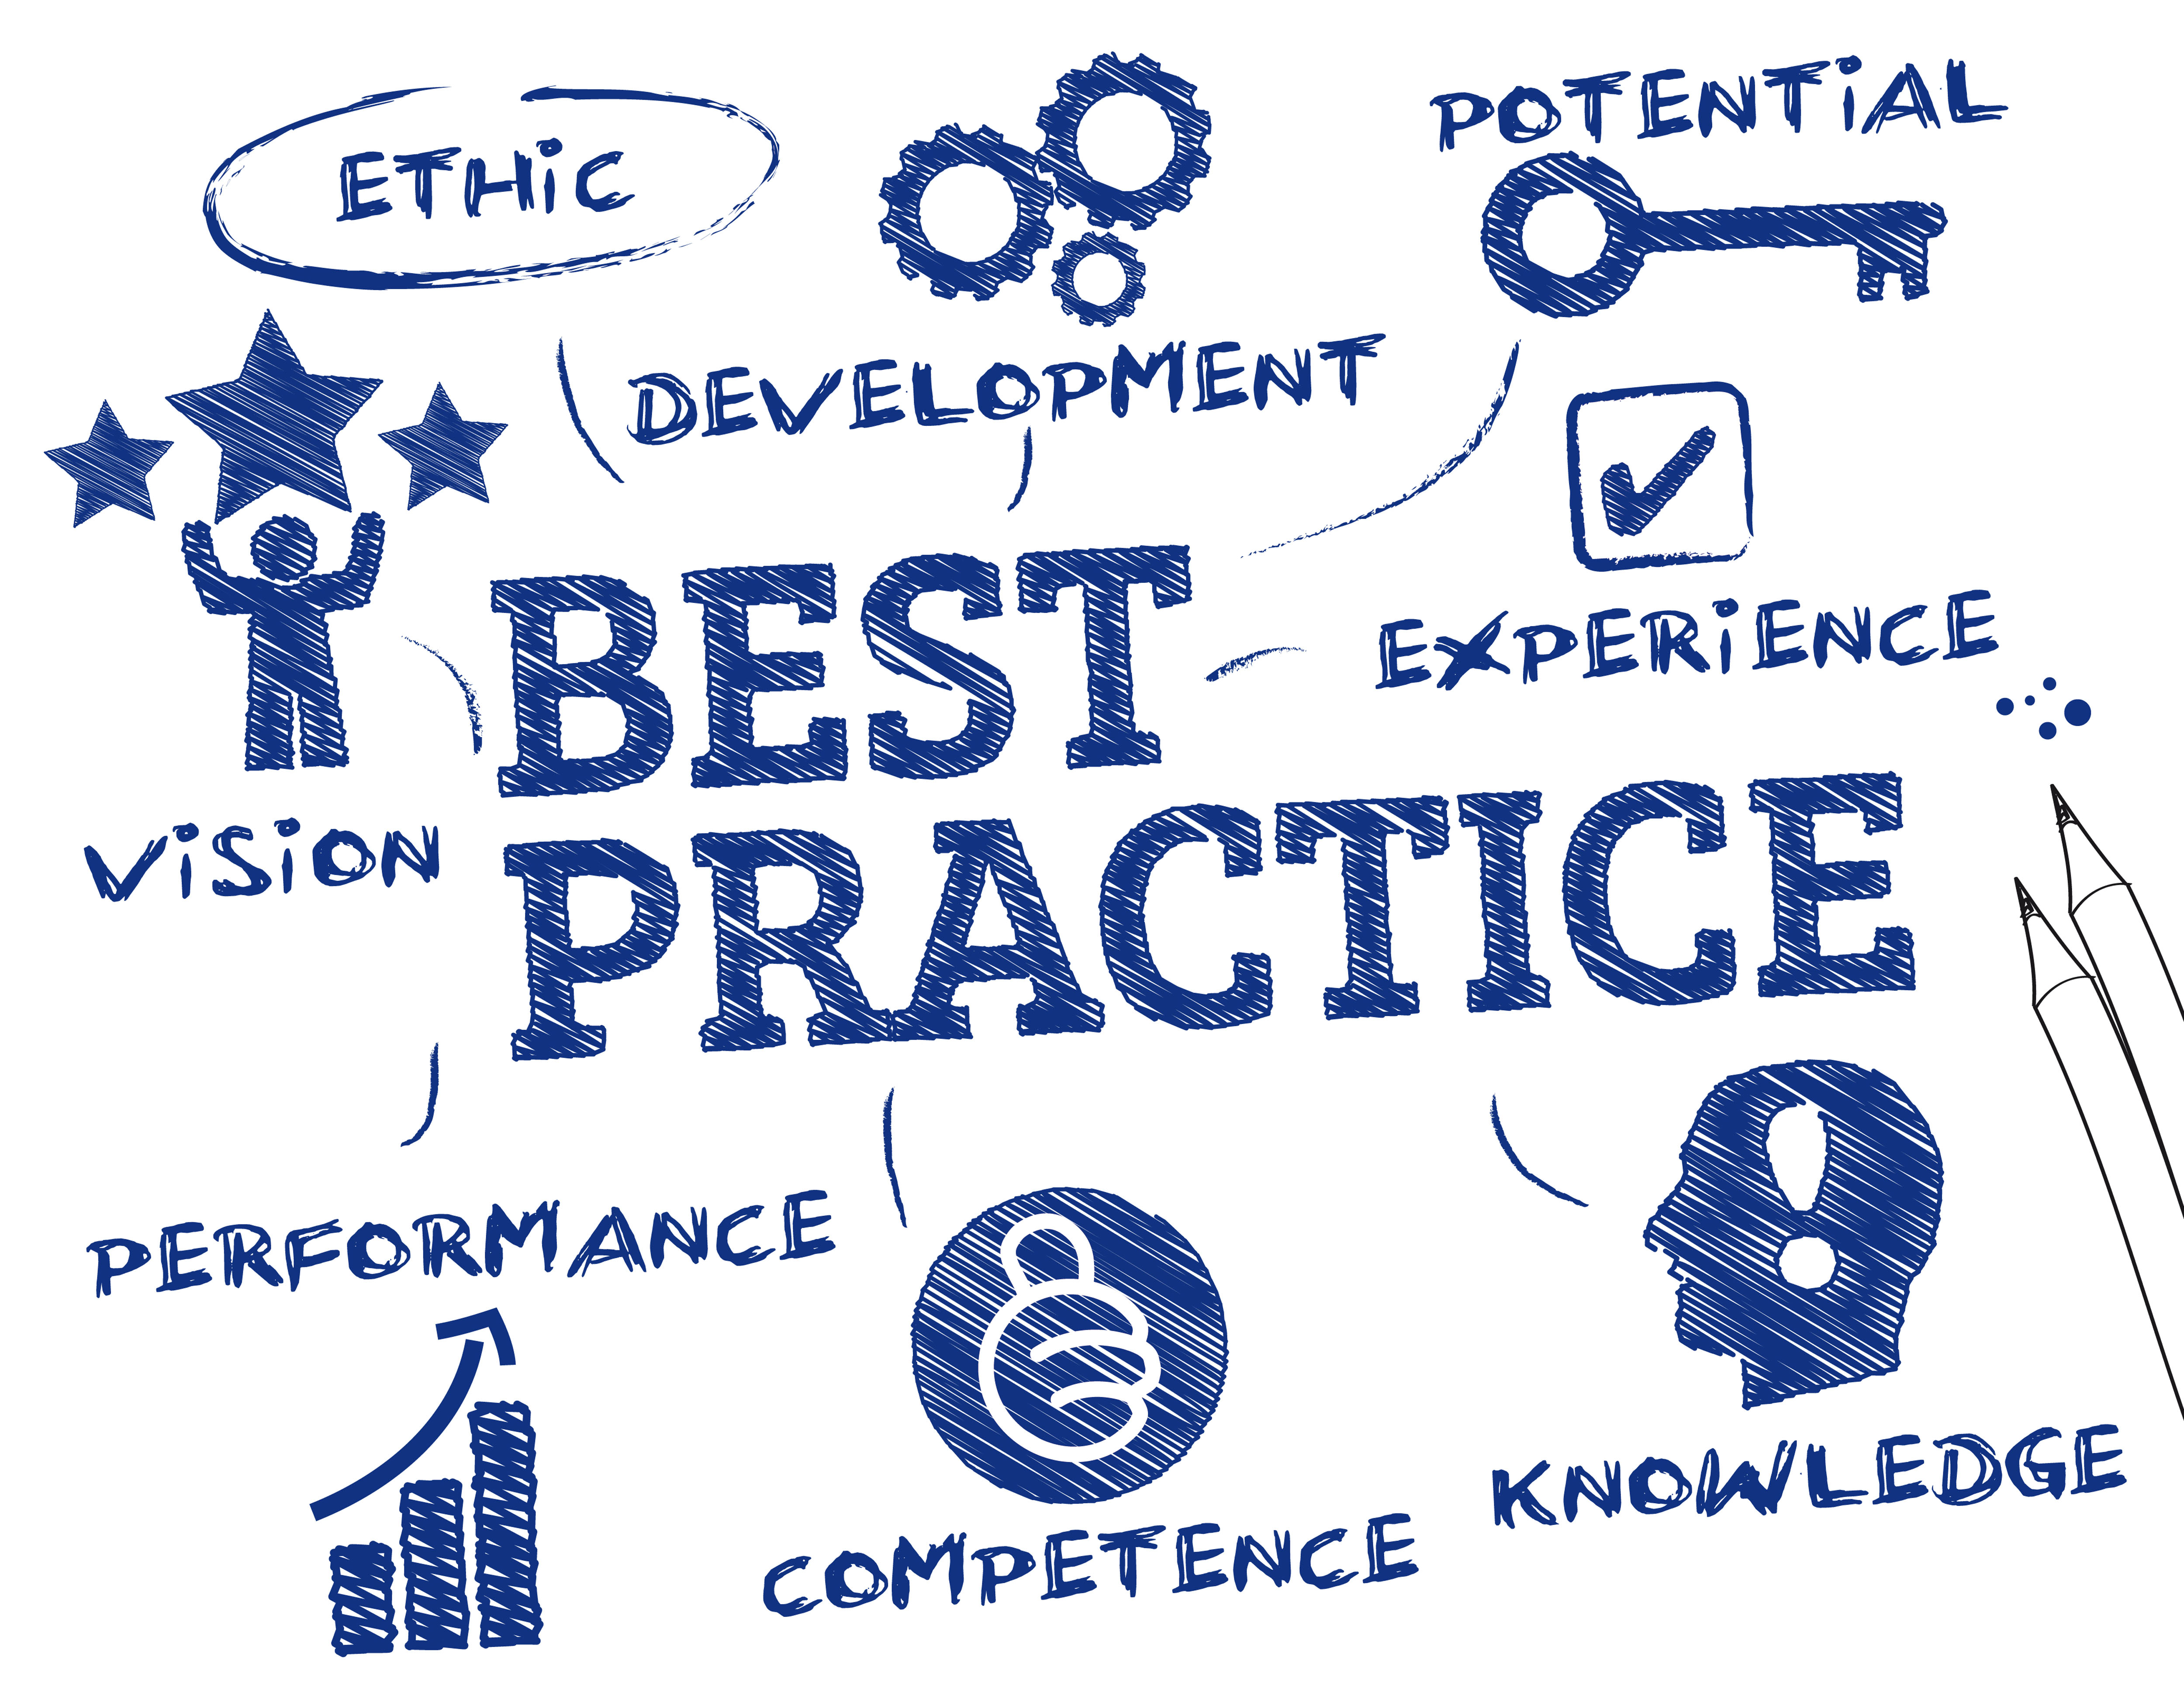 Innovative Training Programs Produce Better Business Outcomes